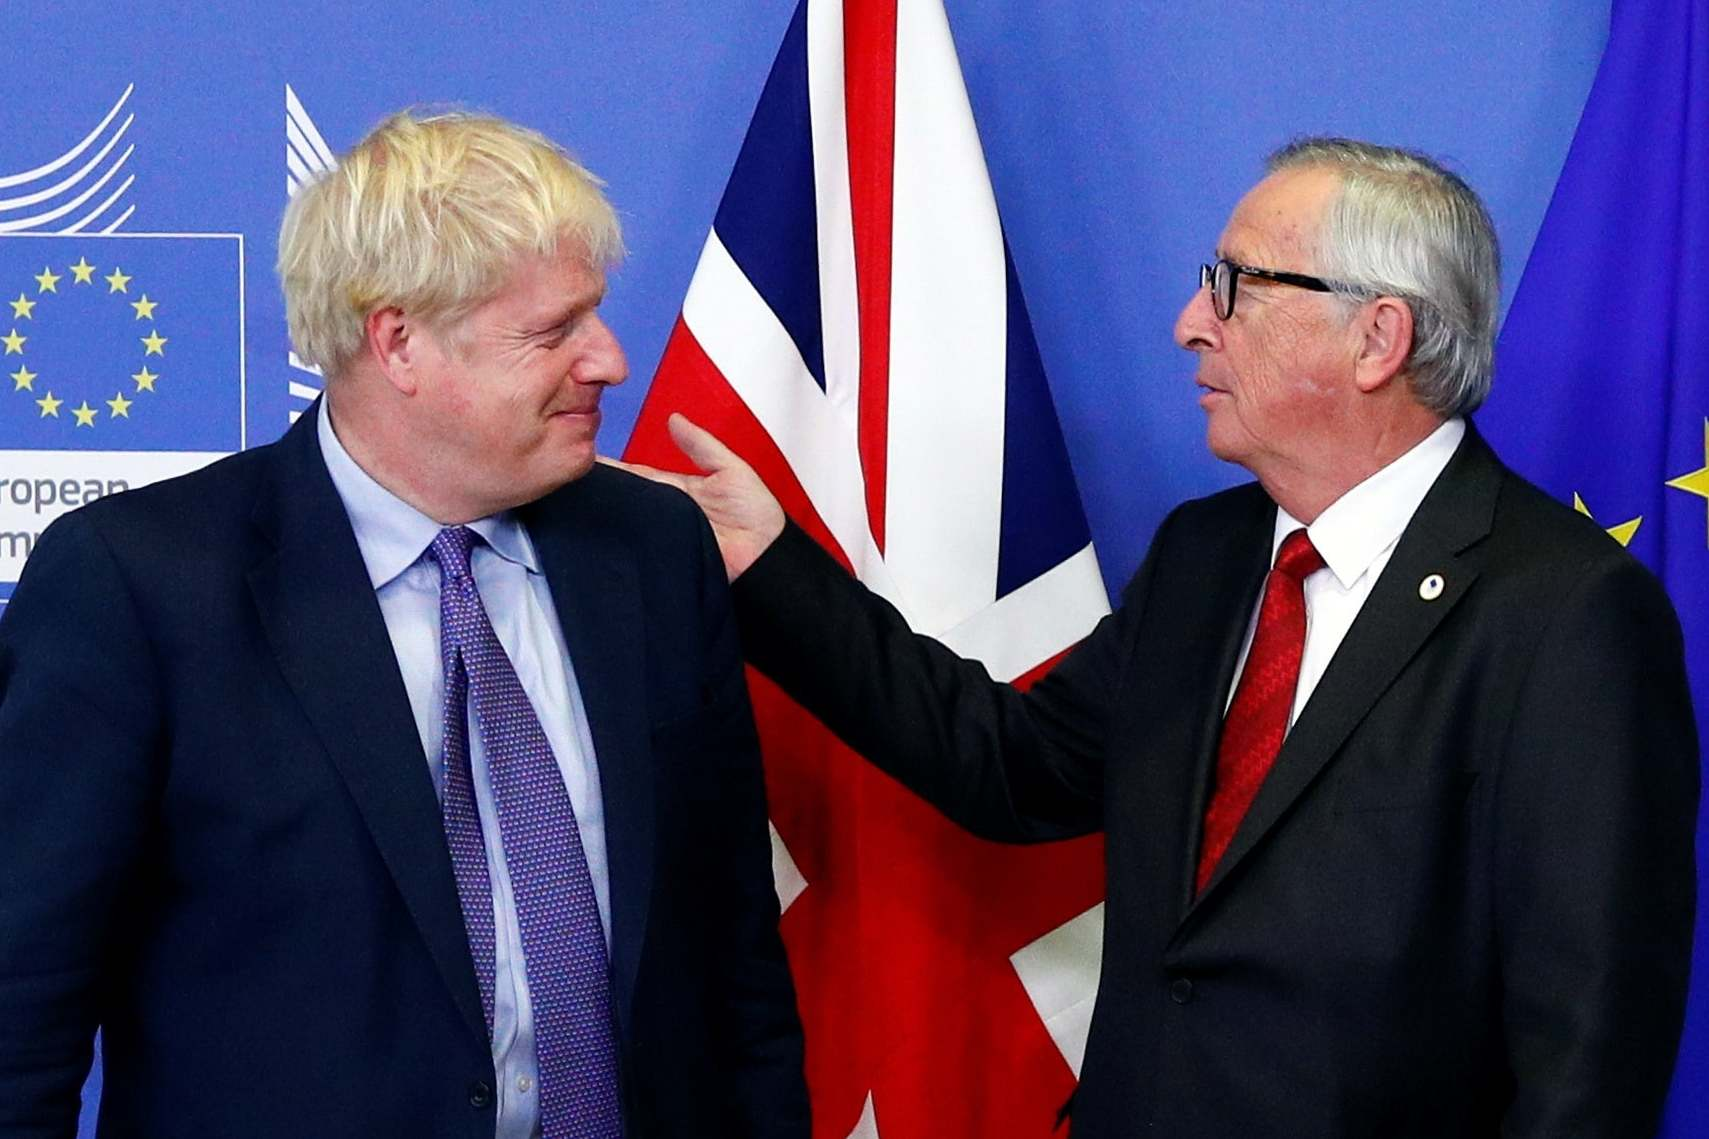 Brexit: Hardline Tories to back Boris Johnson's agreement to pave way for no-deal exit next year, one reveals